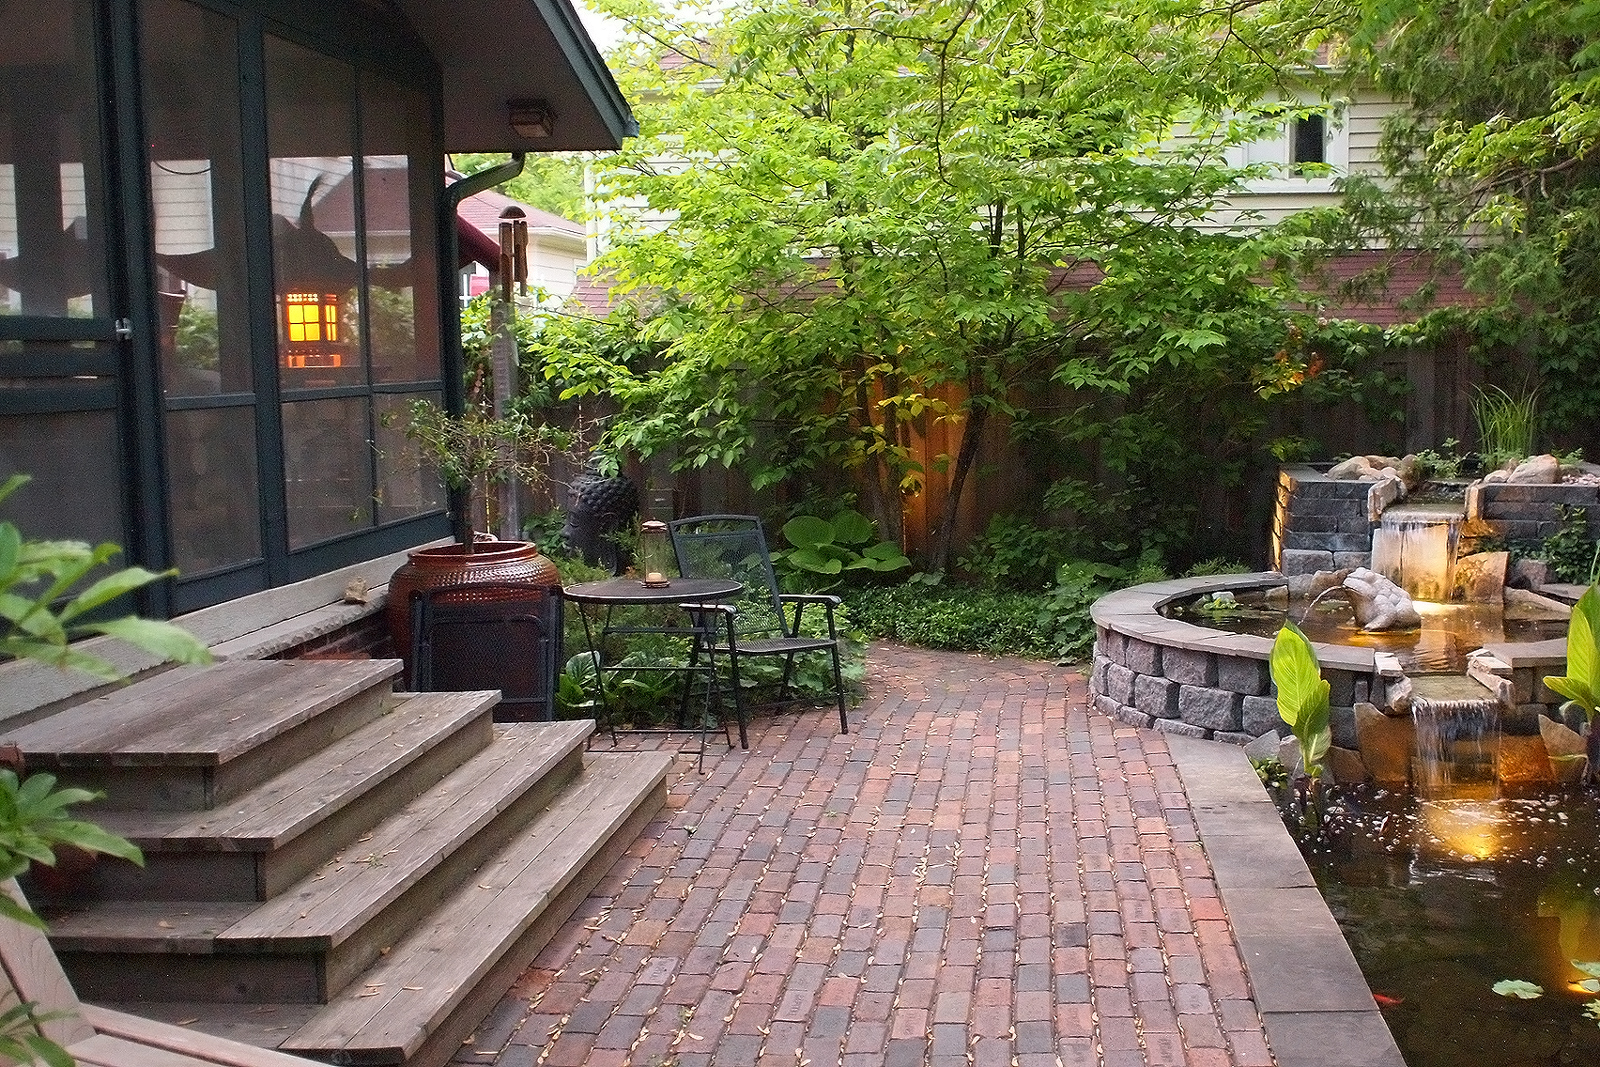 Patio Stones | Paving Stones for Patios | HouseLogic